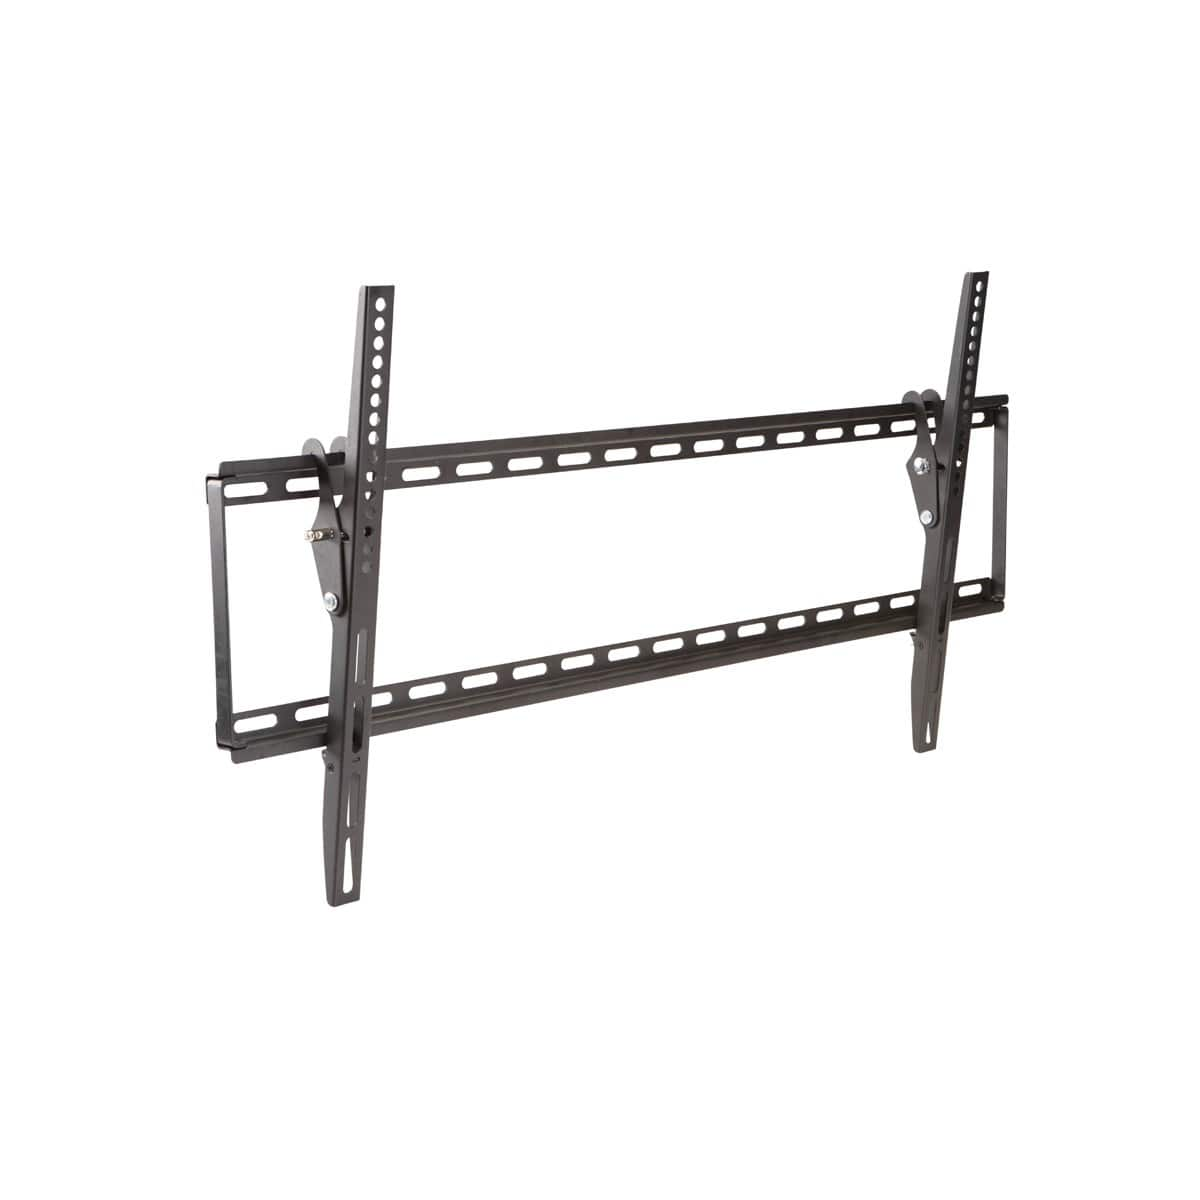 Large Tilt Flat Panel TV Mount for $14.99 on Harbor Freight Tools